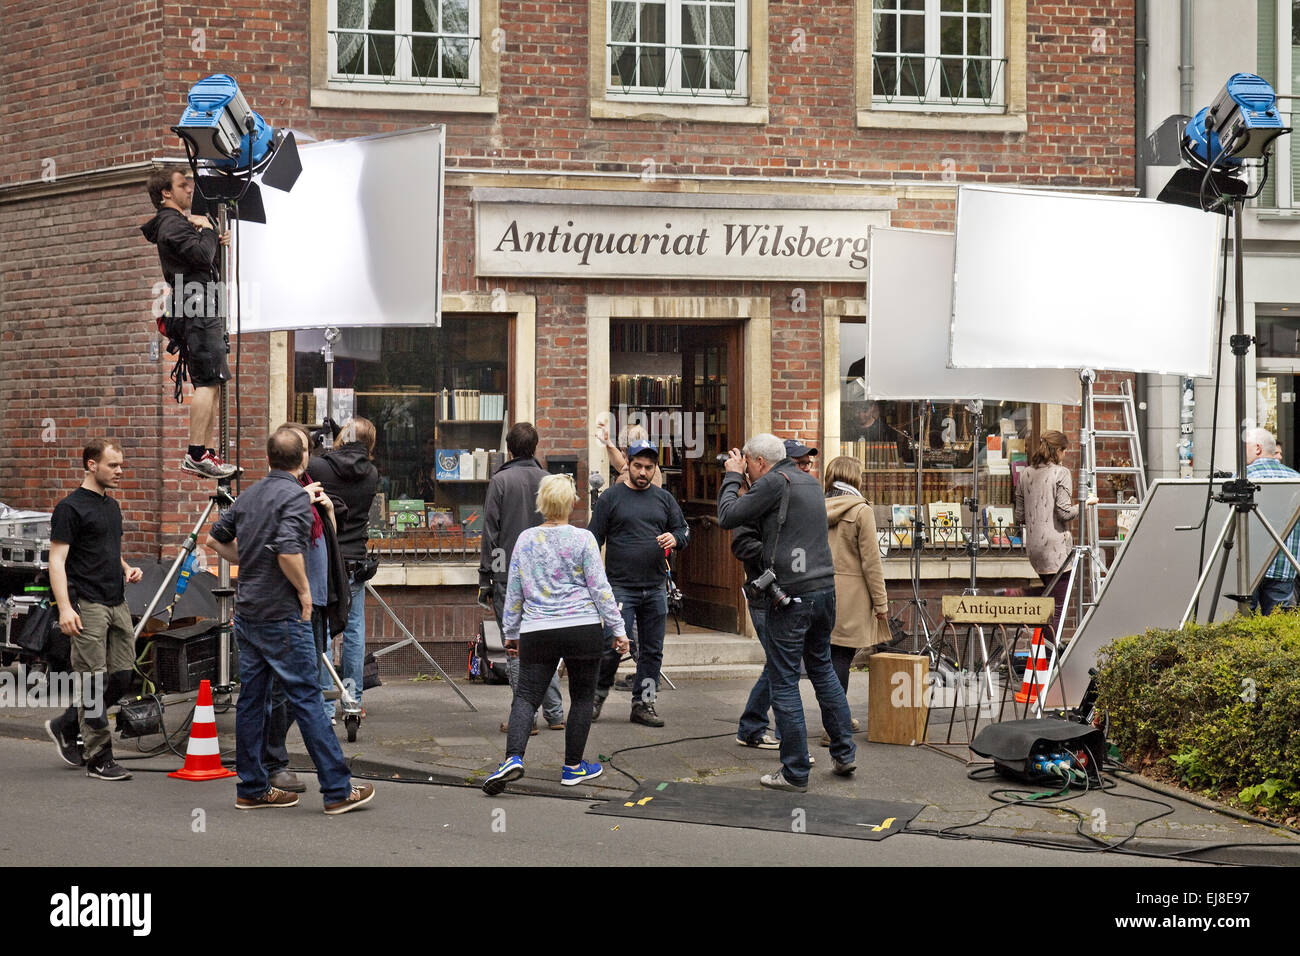 Shooting for a film, Muenster, Germany - Stock Image